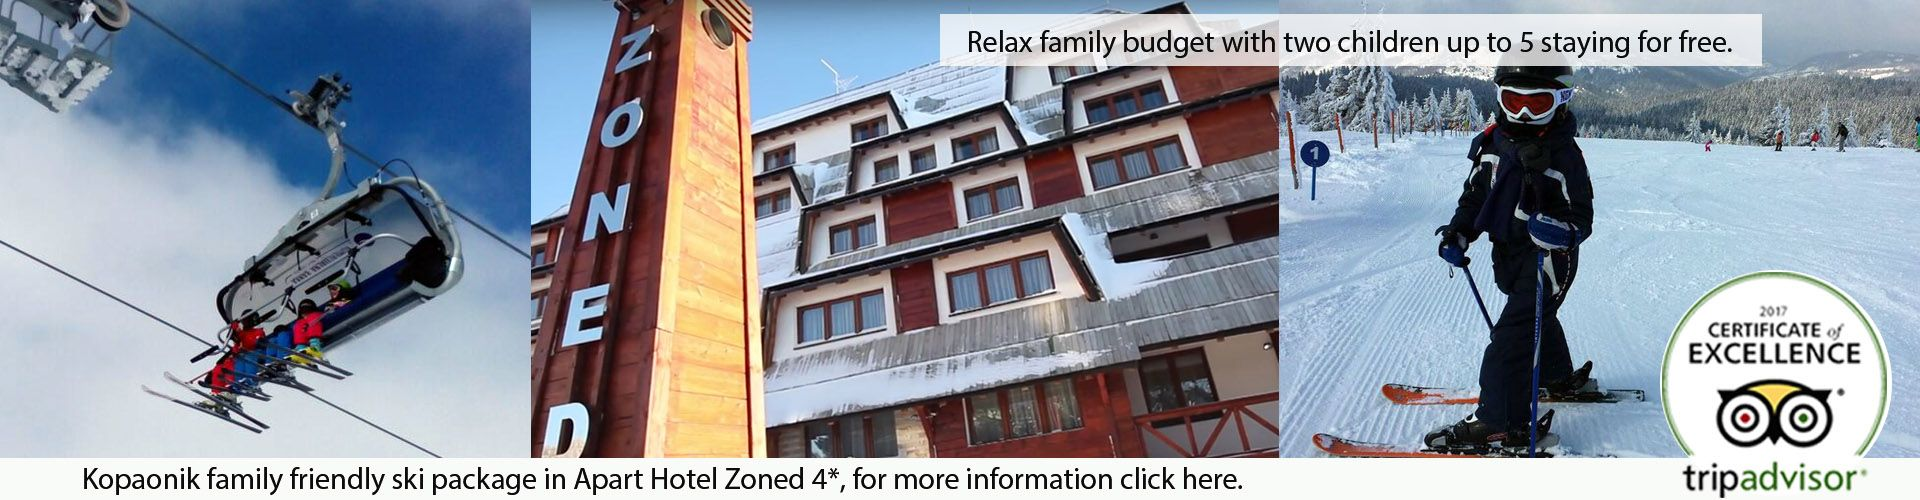 Family on ski lift, exterior of hotel Zoned and little boy on skiing at Kopaonik